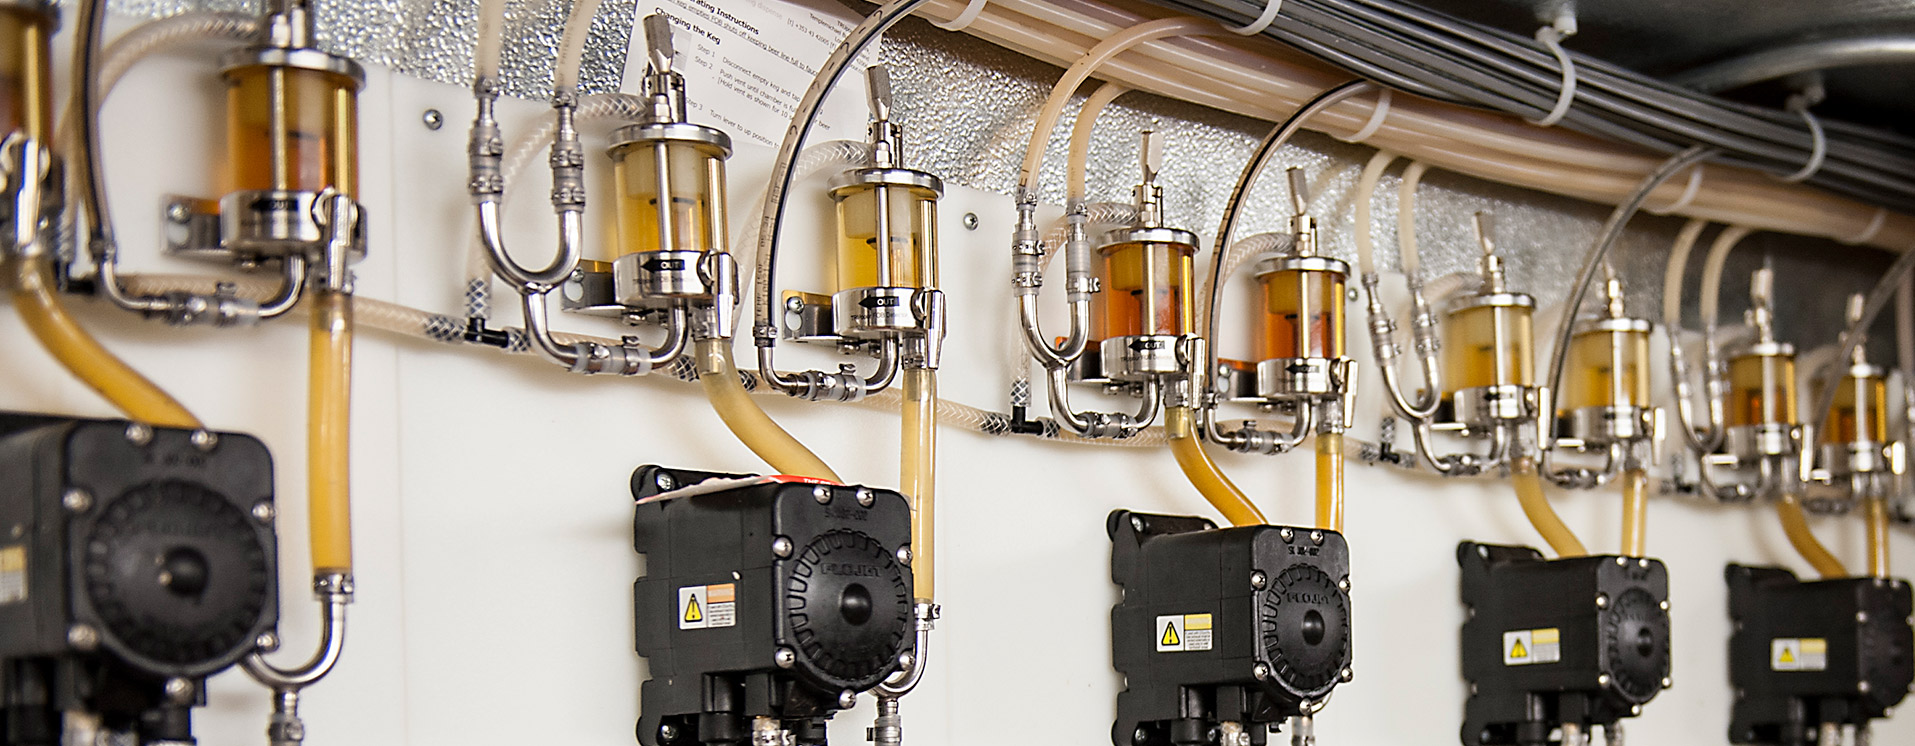 hight resolution of fobs installed in a long draw draft beer system will reduce beer waste and increase beer profits the purpose of this article is to describe how an fob